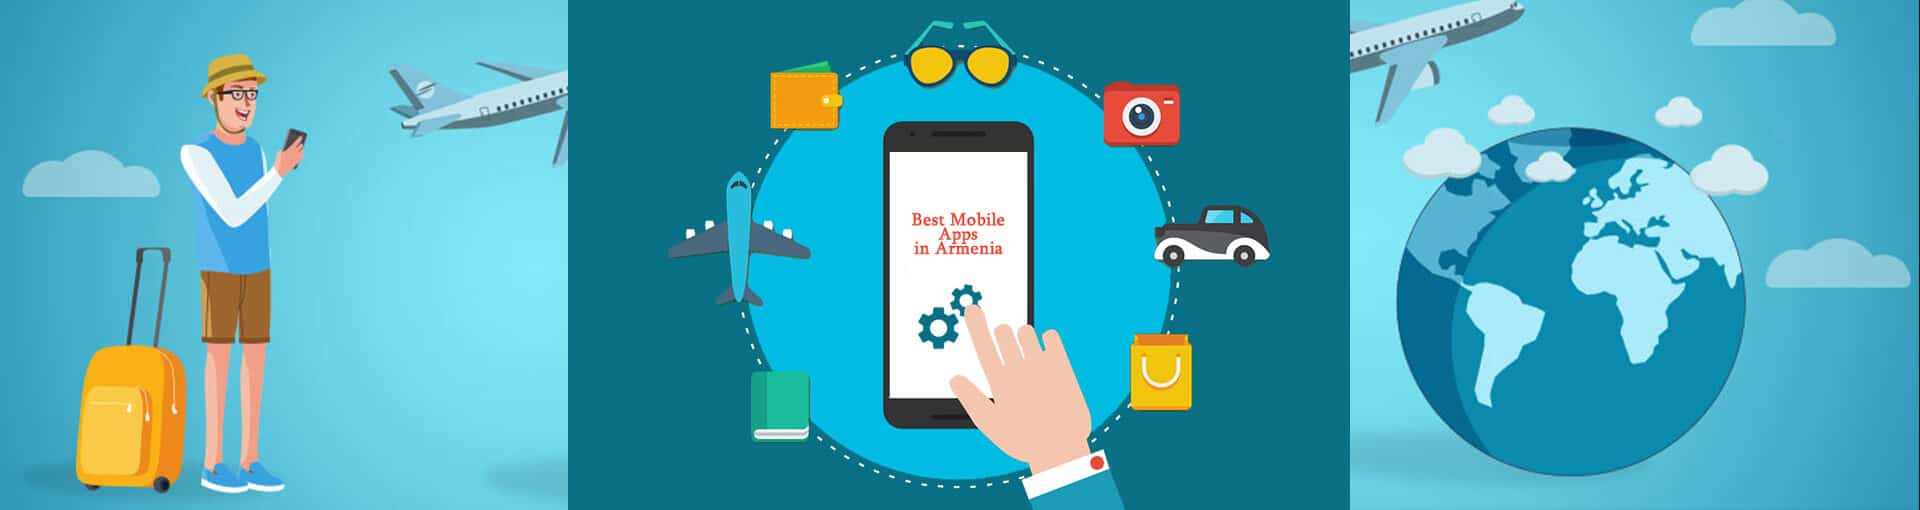 Best mobile apps for traveling in Armenia